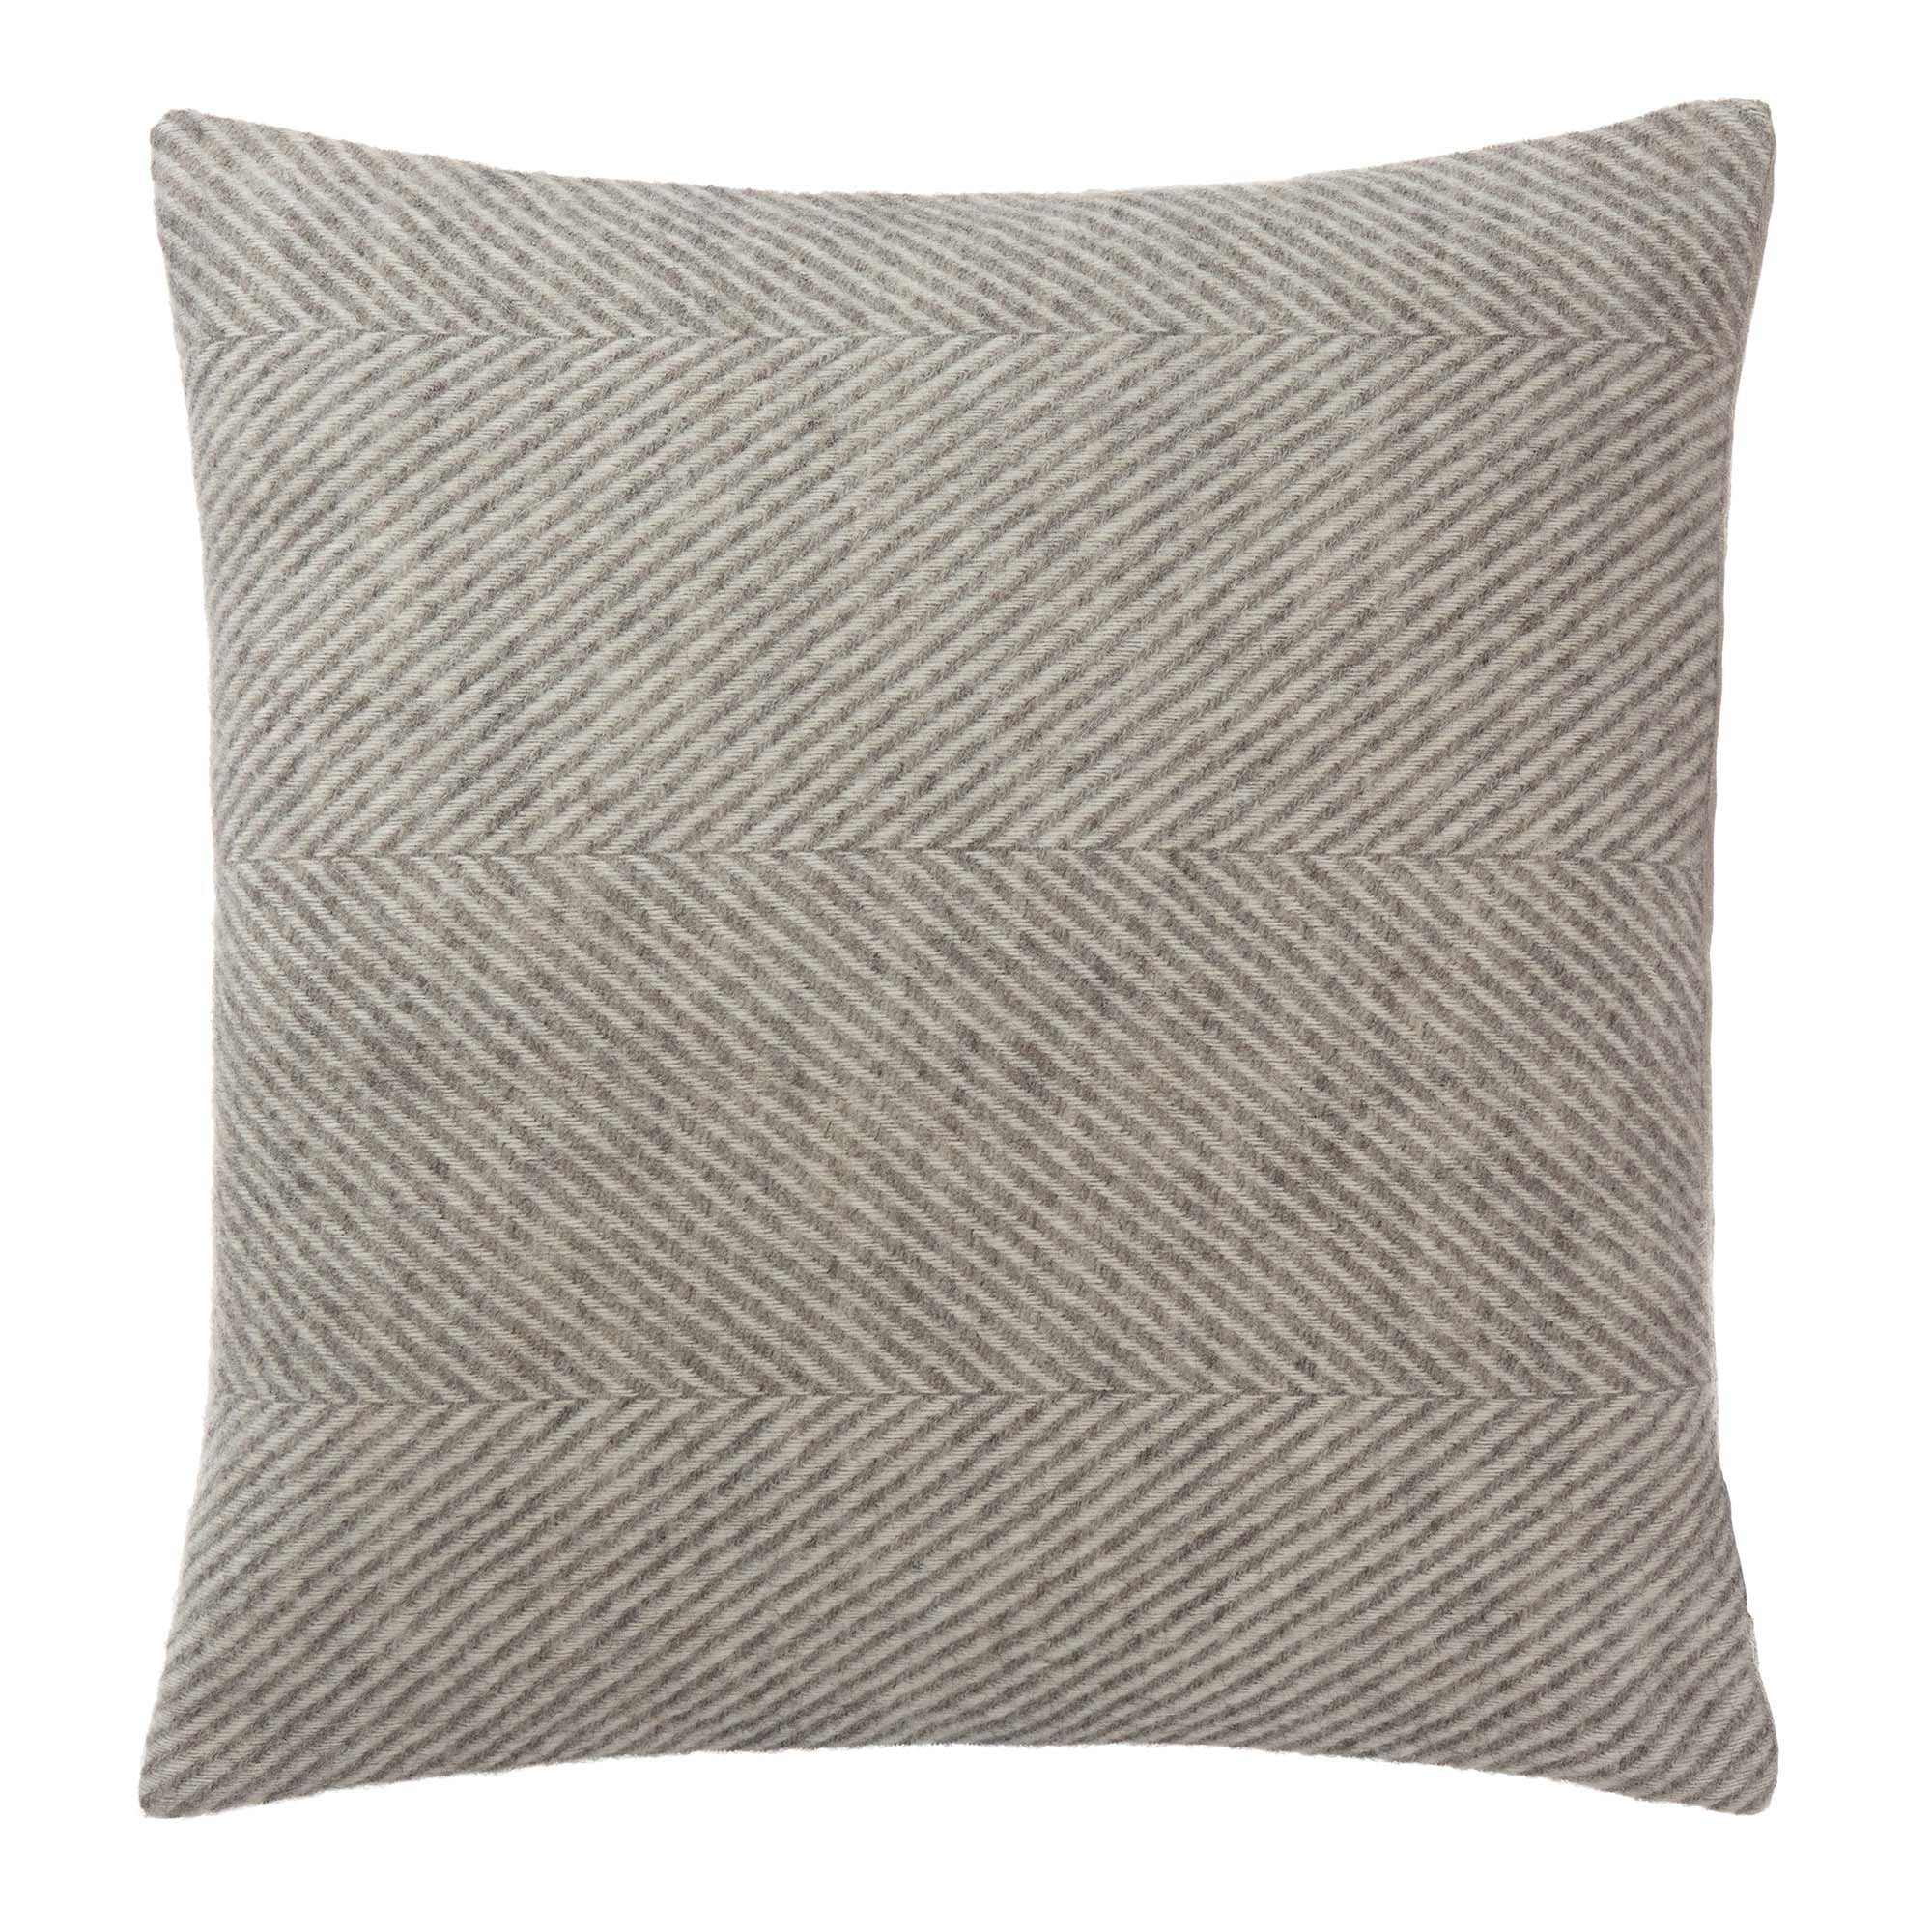 Gotland cushion cover, grey & cream, 100% wool & 100% linen